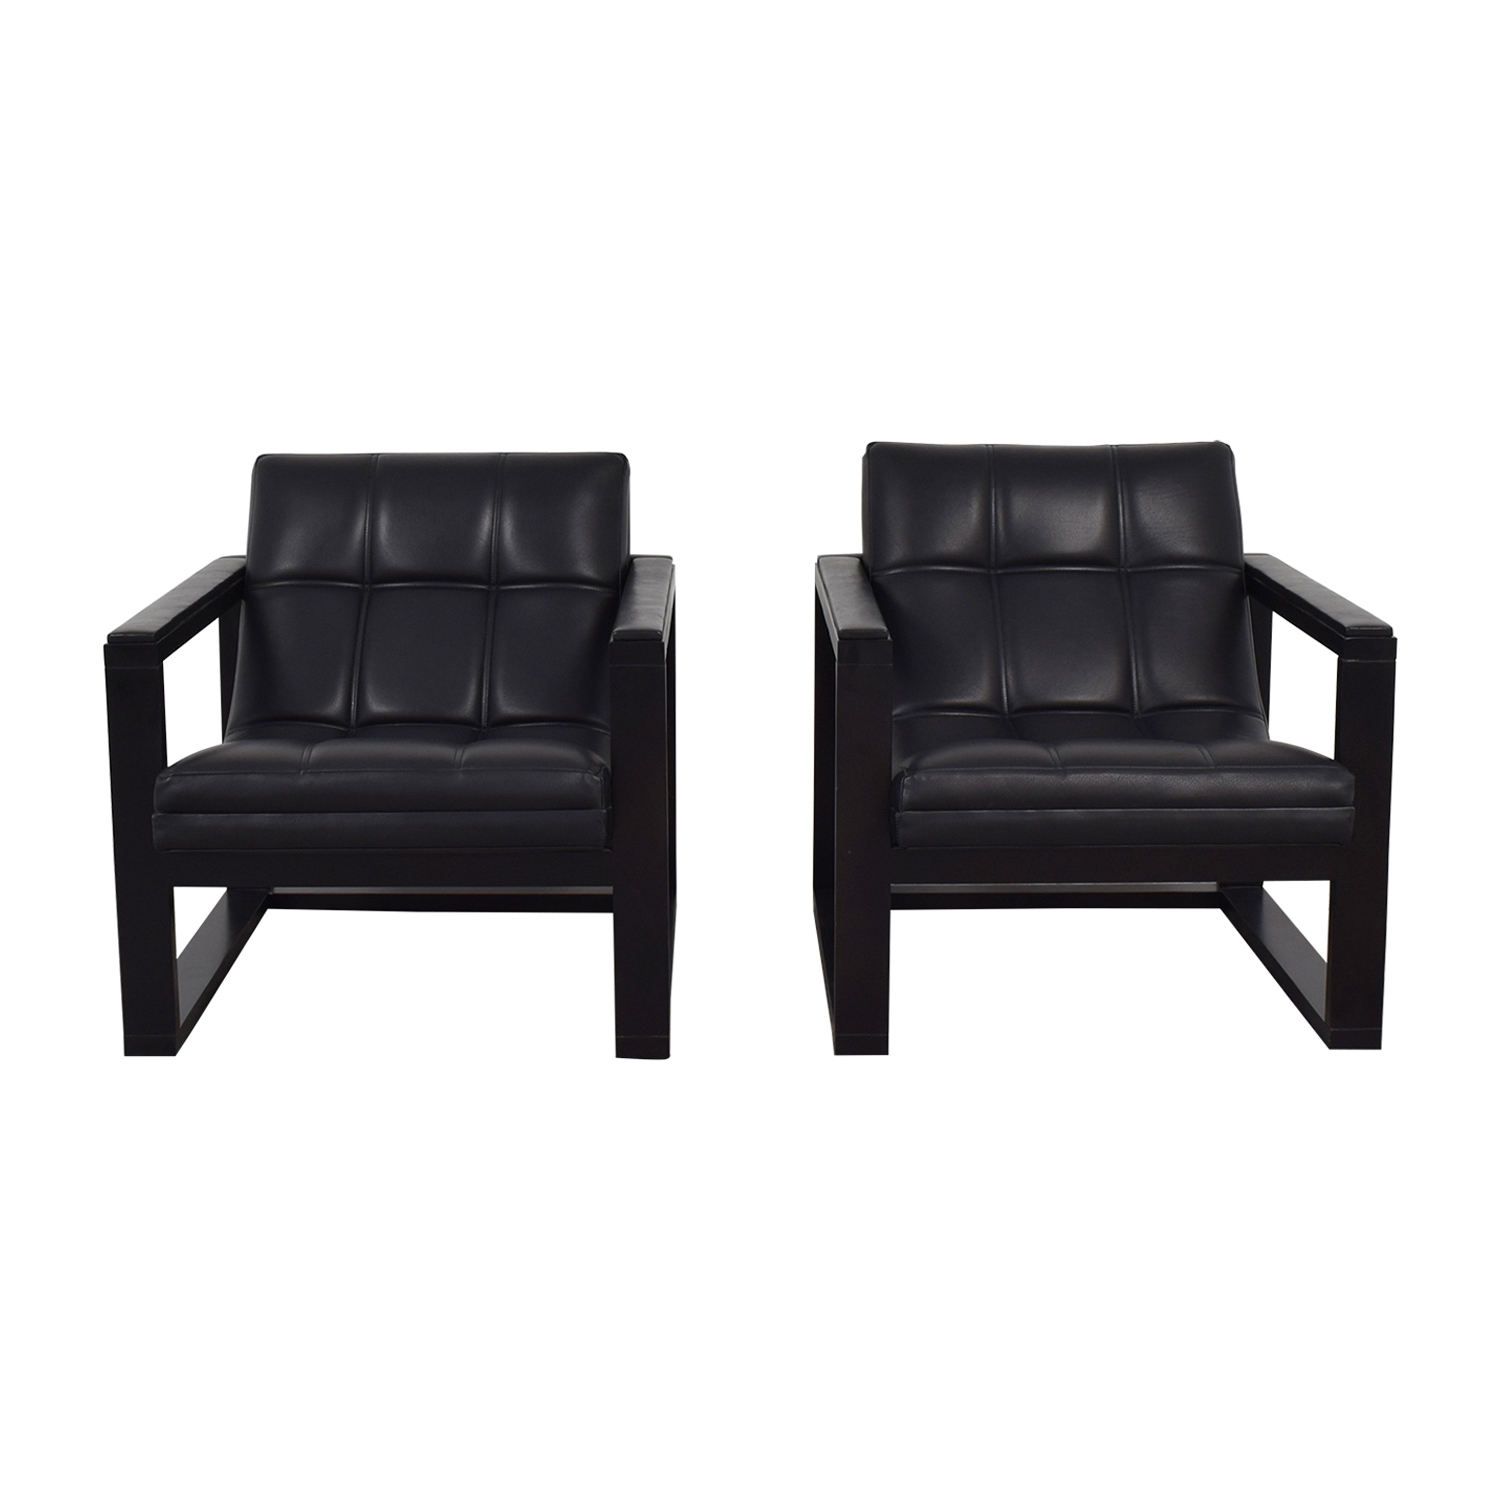 Maurice Villency Architectural Black Accent Chairs sale